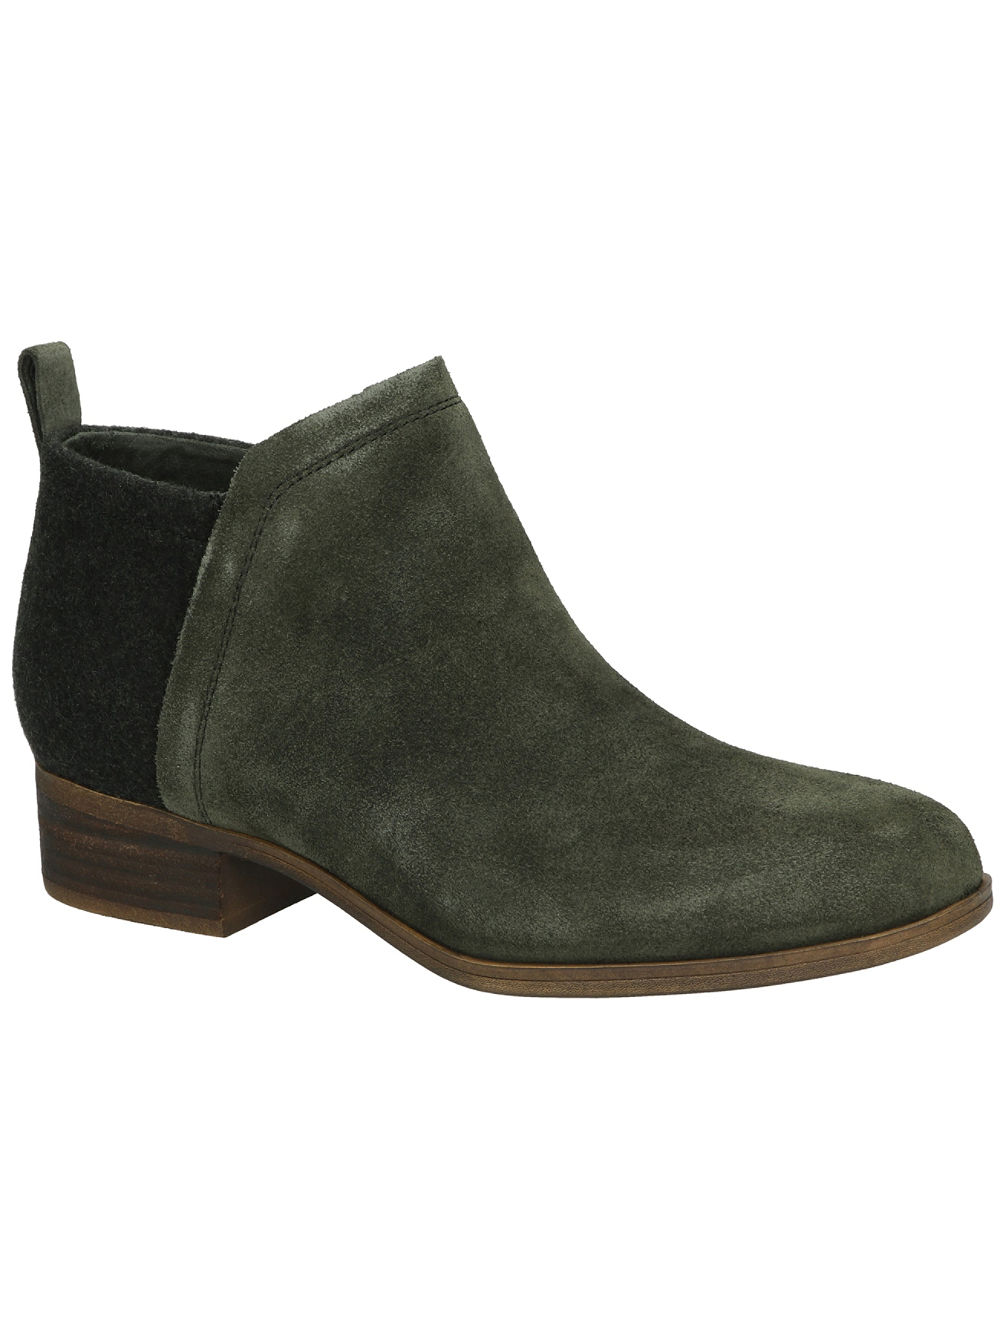 3cfbb18a929 Buy TOMS Deia Bootie Boots Women online at Blue Tomato